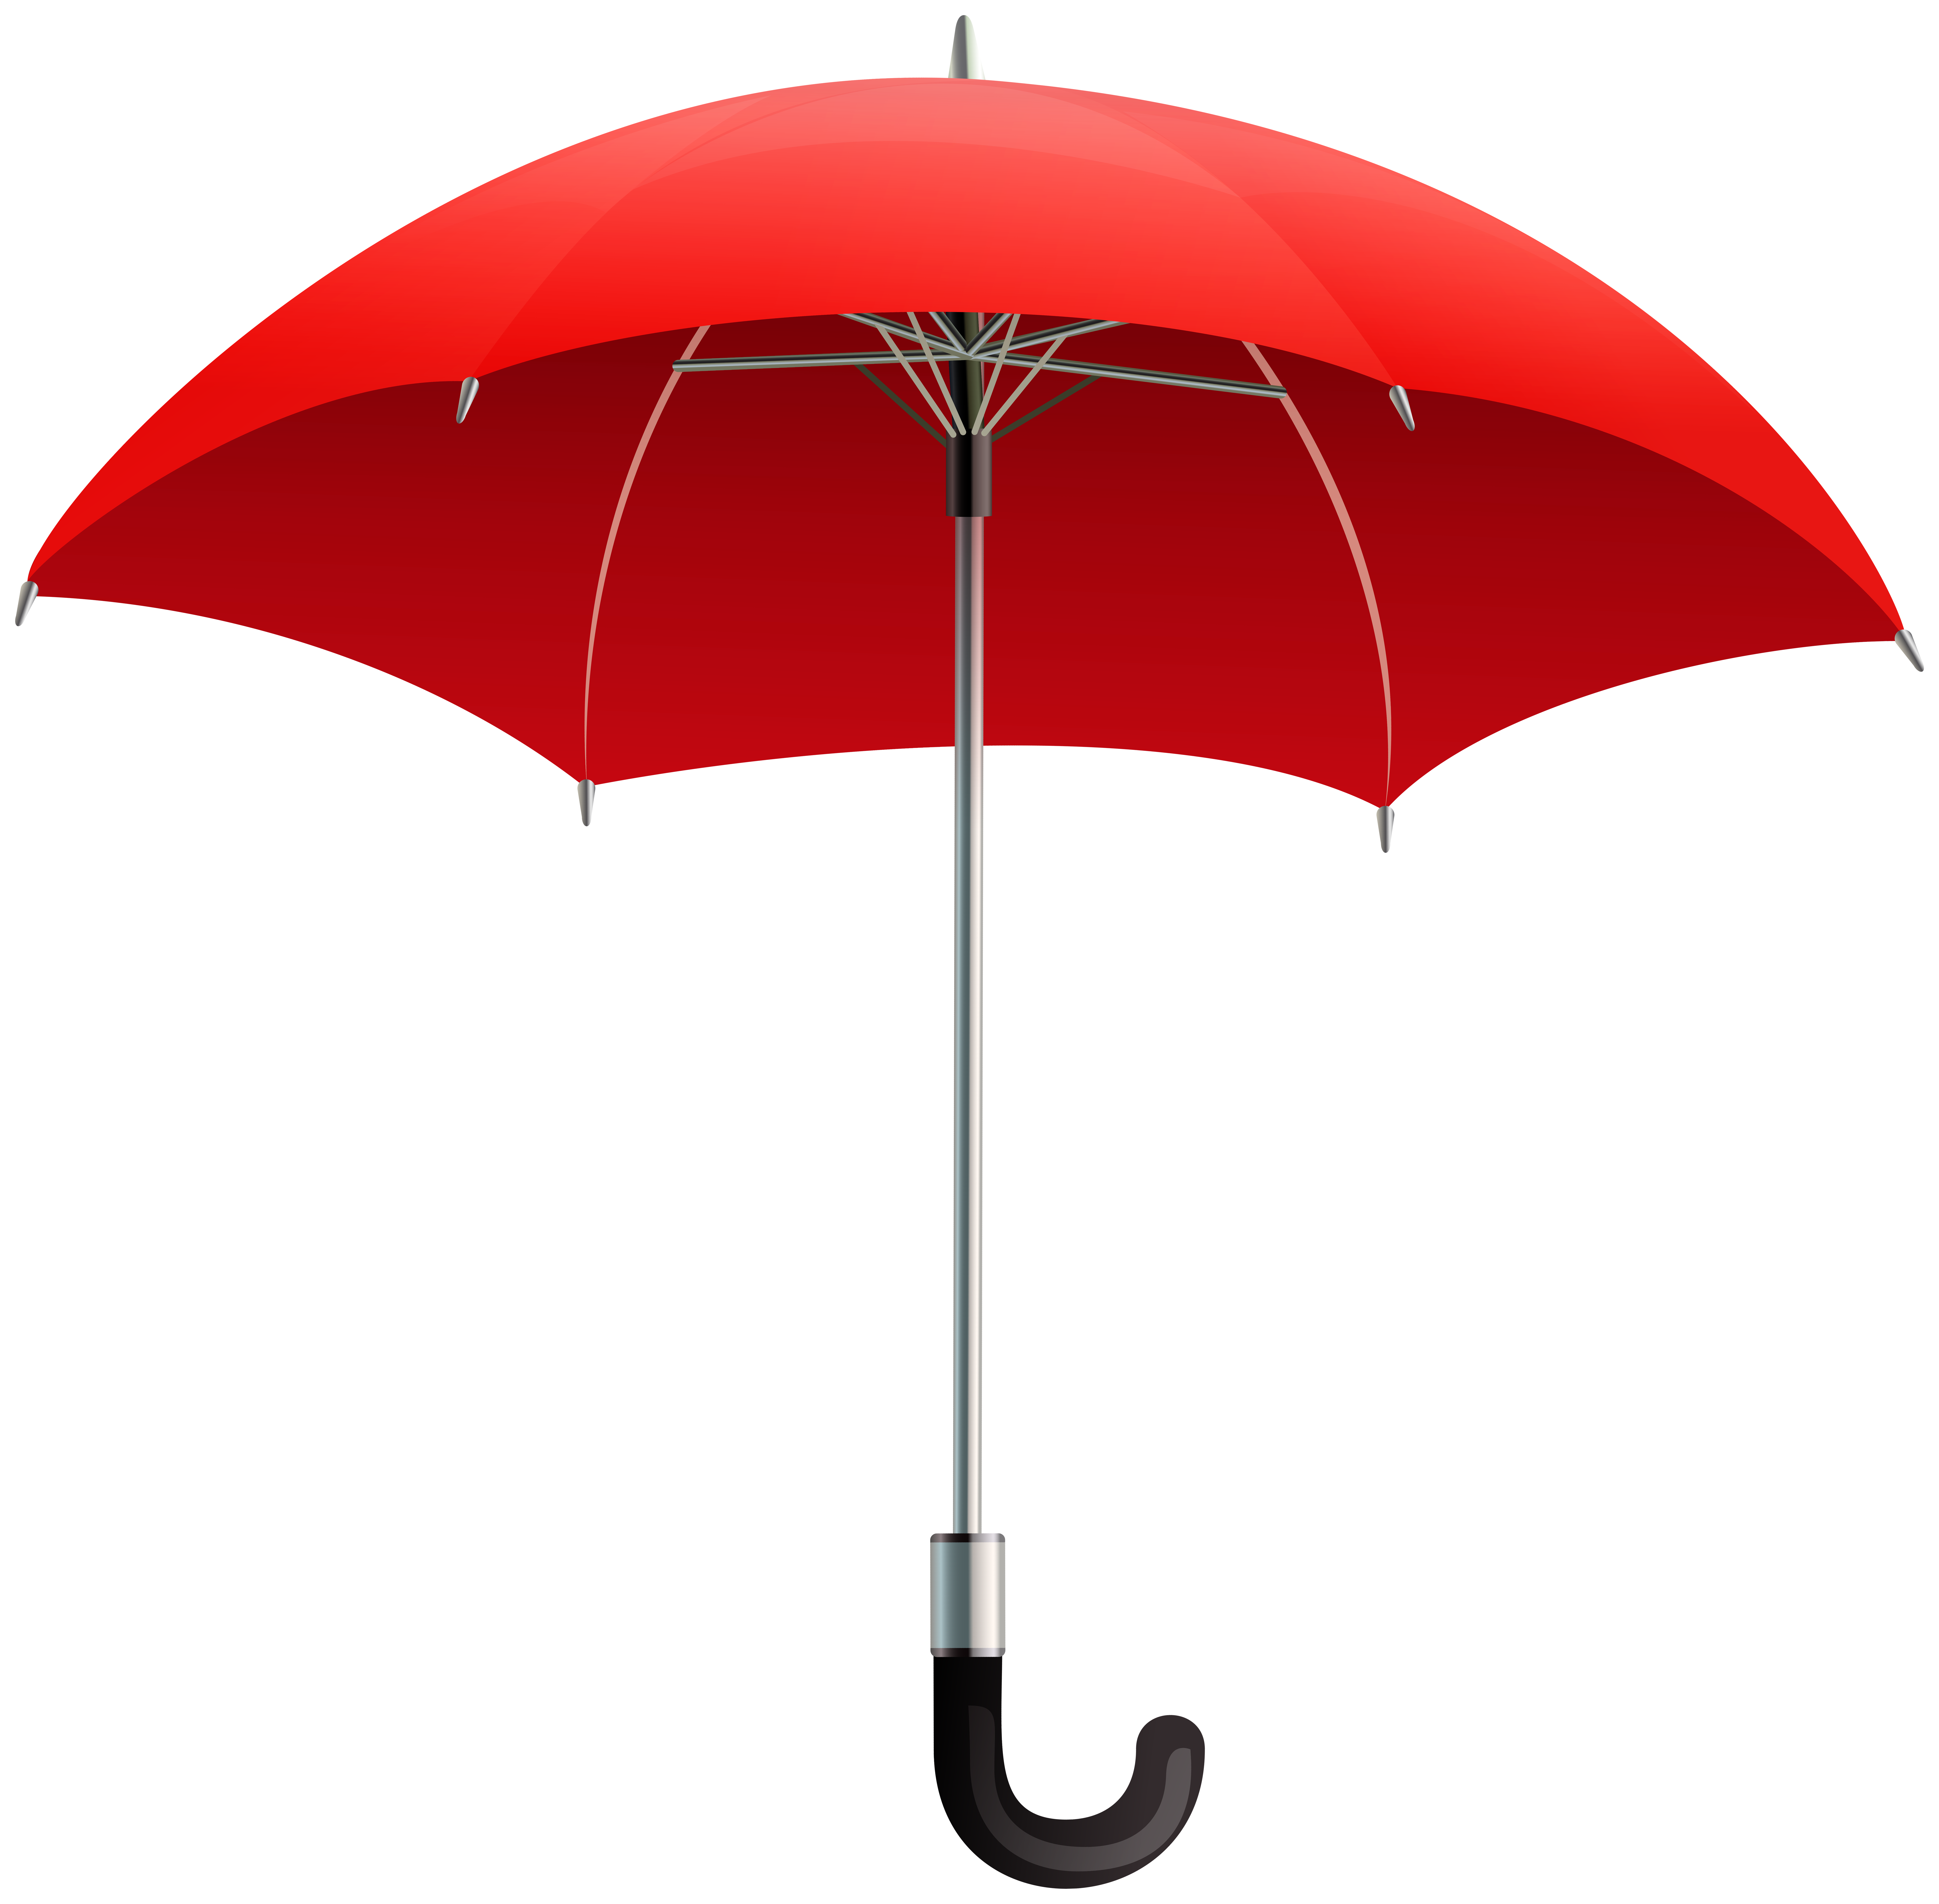 Red Umbrella Transparent Image.